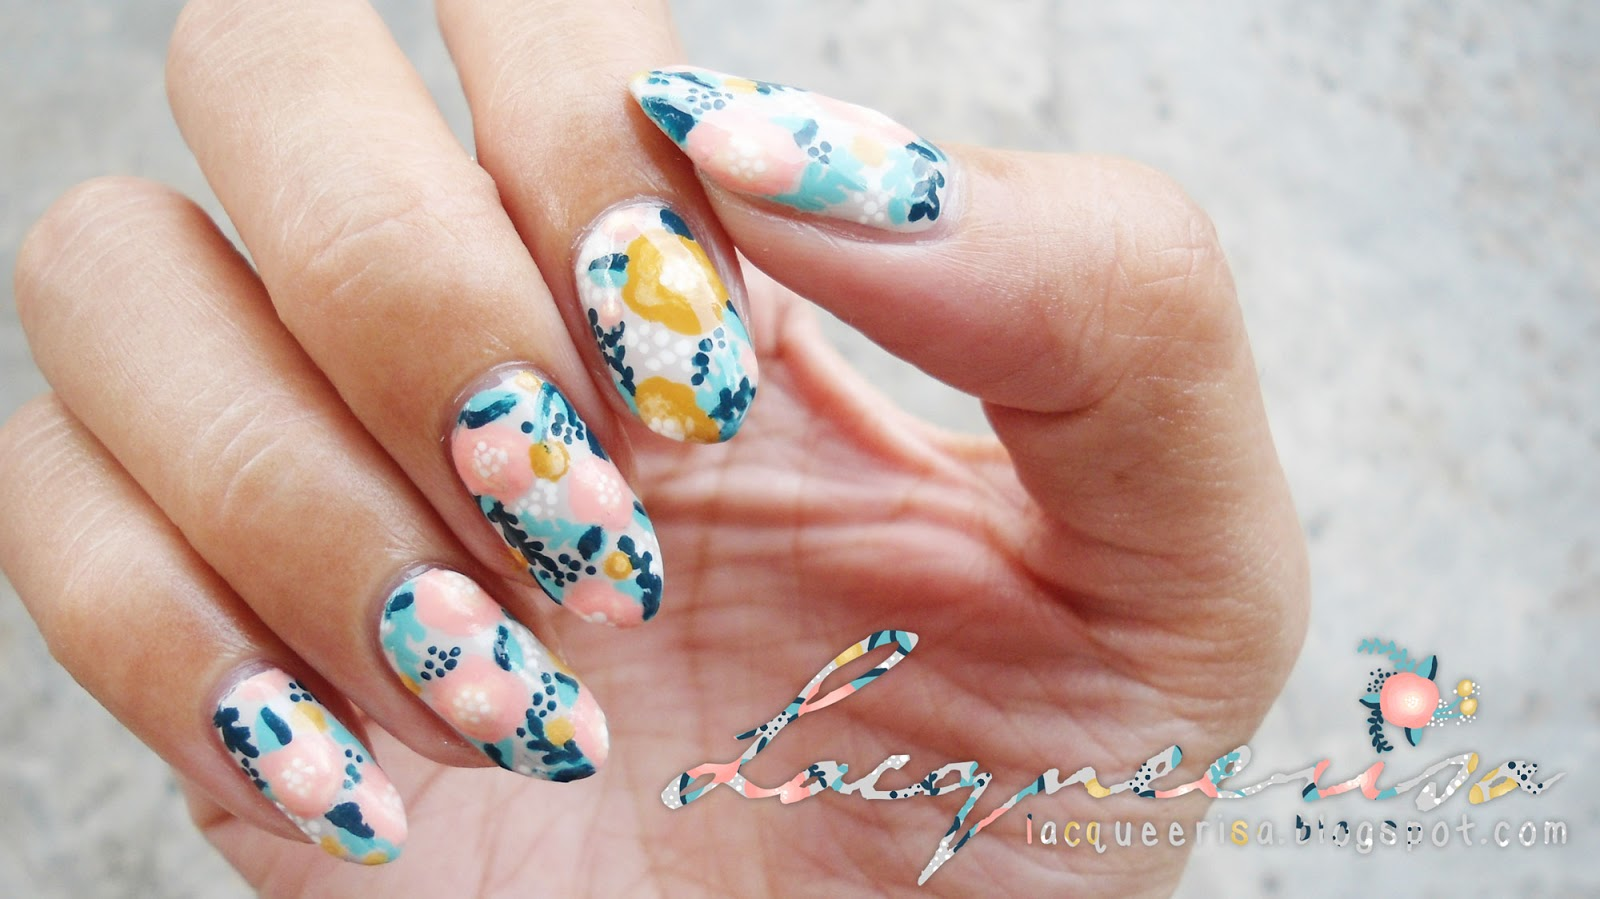 Lacqueerisa: Creamy Dreamy Floral Nails